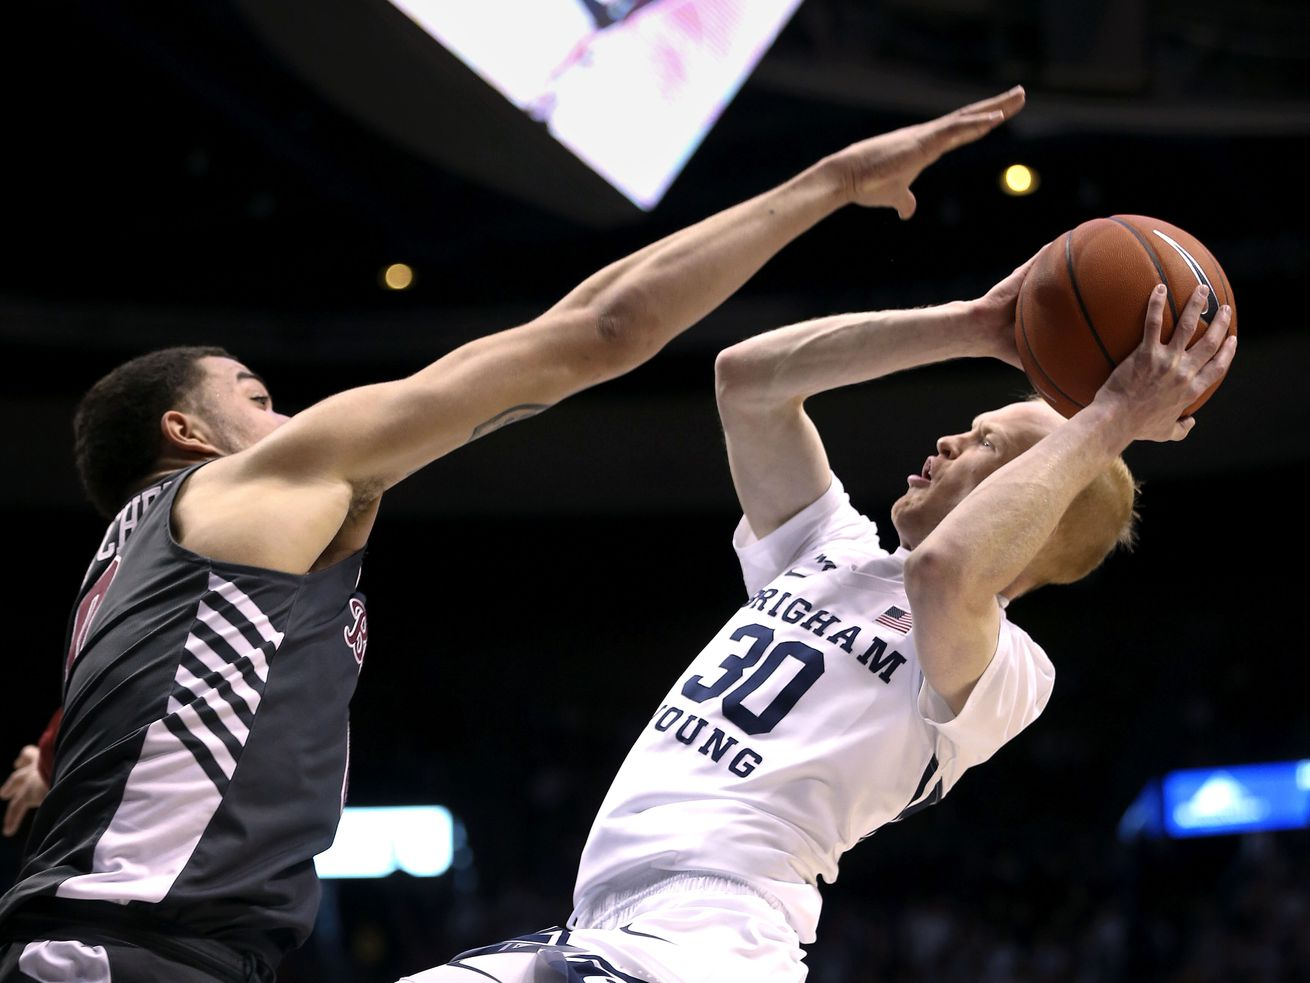 TJ Haws carries No. 23 BYU to win over Santa Clara, setting up big showdown with No. 2 Gonzaga